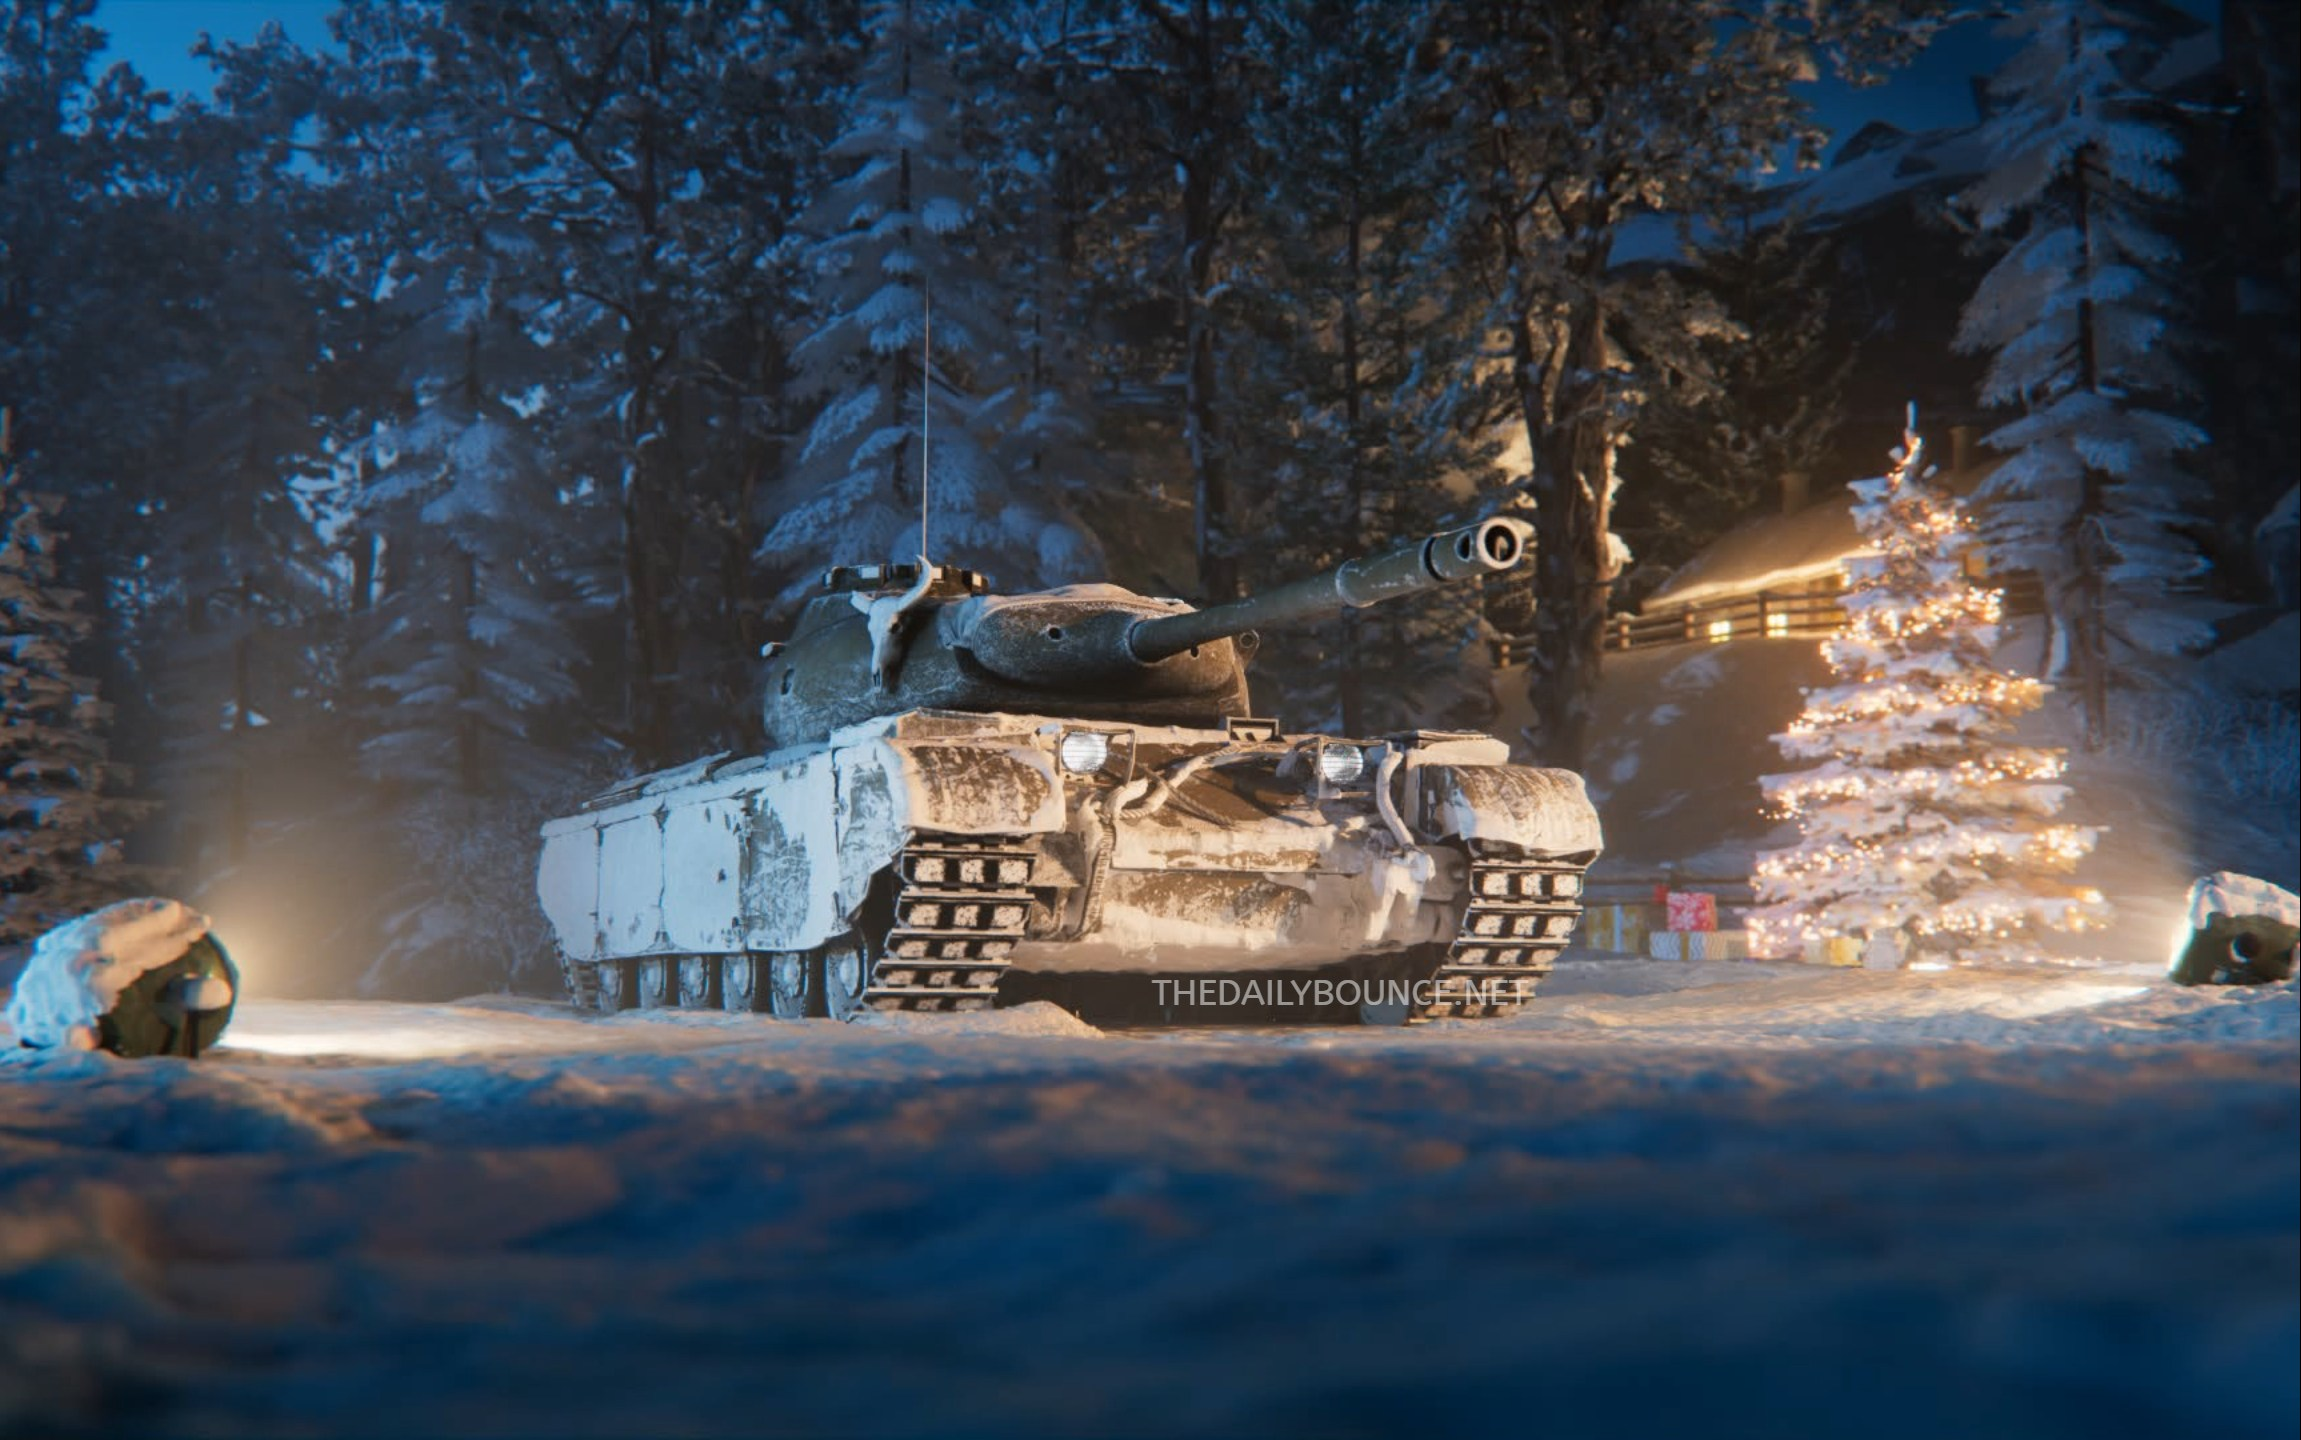 World Of Tanks 2020 Christmas Boxes Tank Camop World of Tanks Holiday Ops 2020: Lootboxes Tanks & Styles Confirmed!